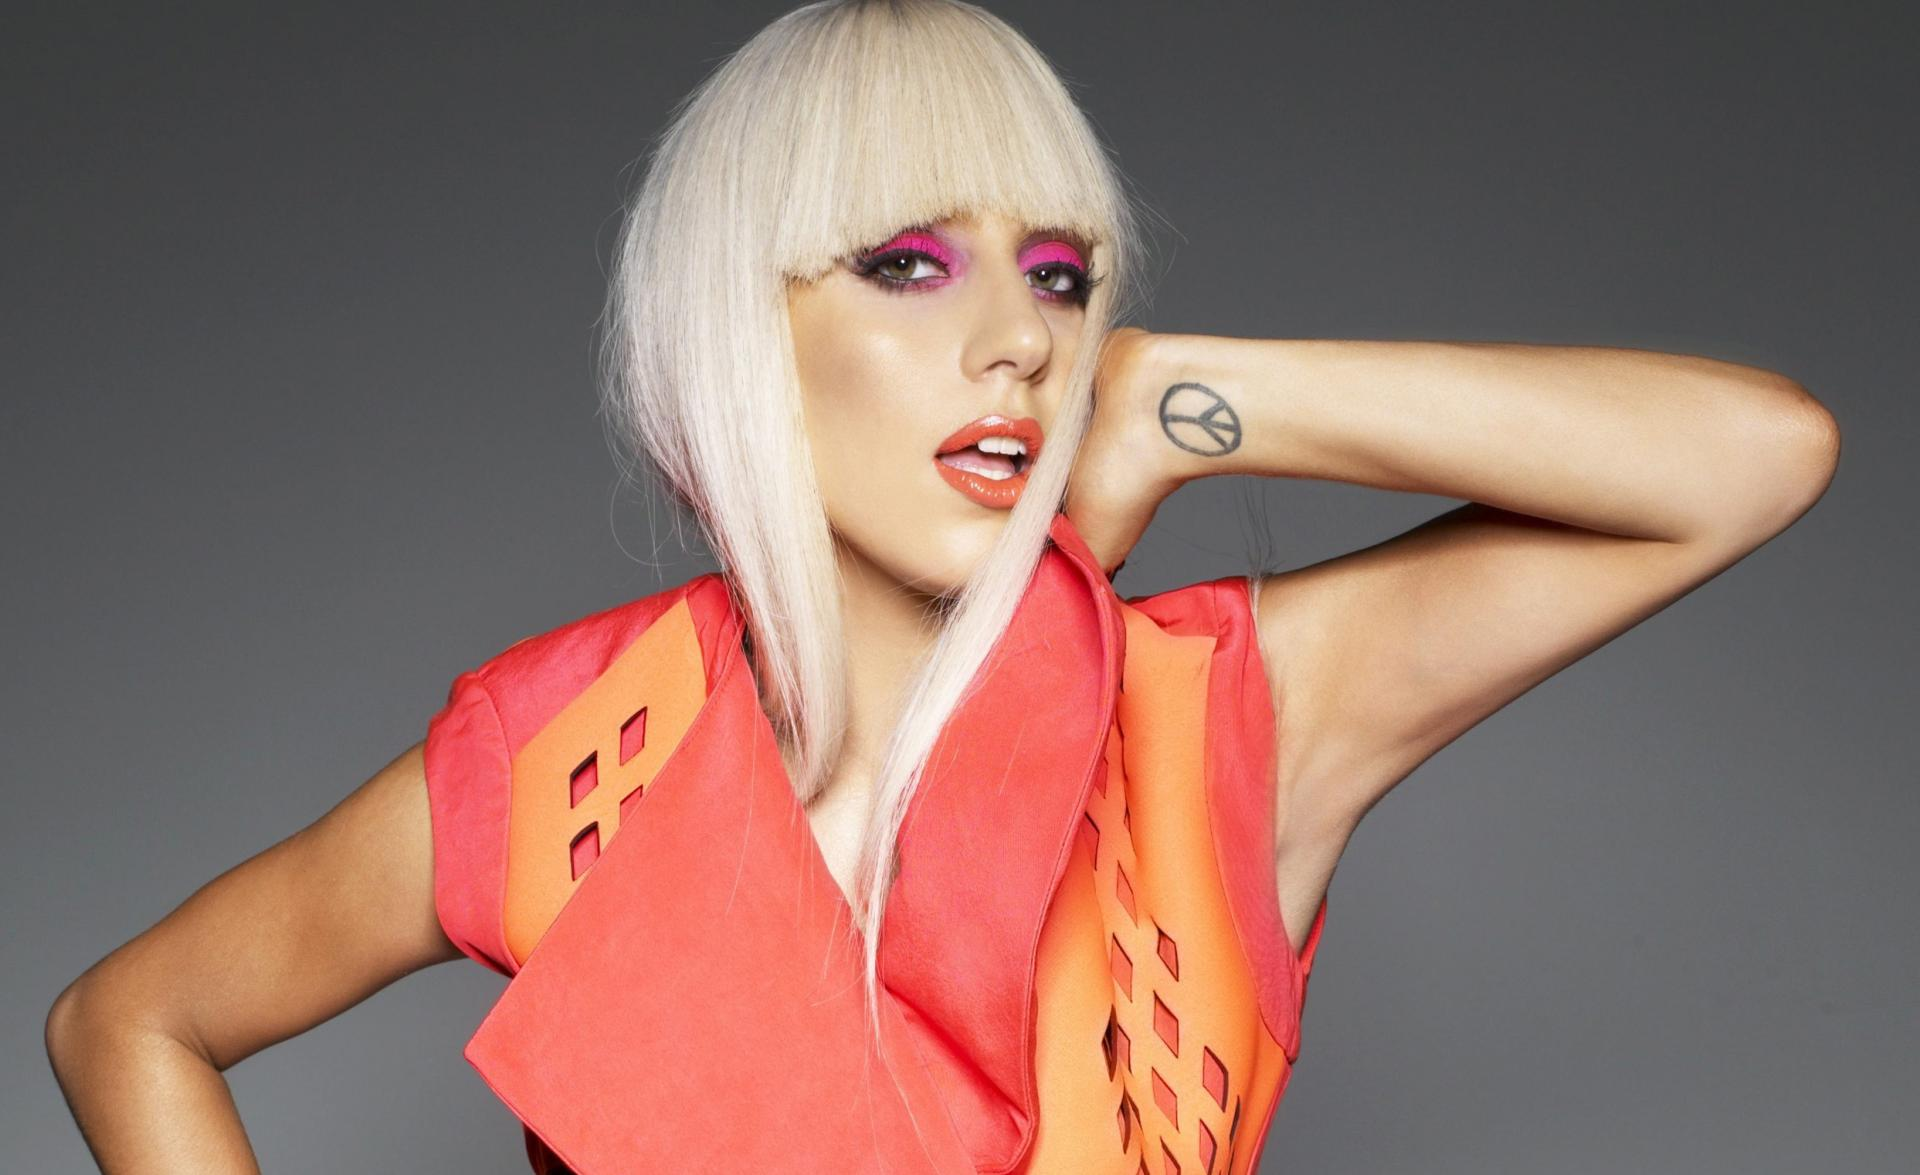 lady gaga impact Fanpop community fan club for lady gaga fans to share, discover content and connect with other fans of lady gaga find lady gaga videos, photos, wallpapers, forums, polls, news and more.